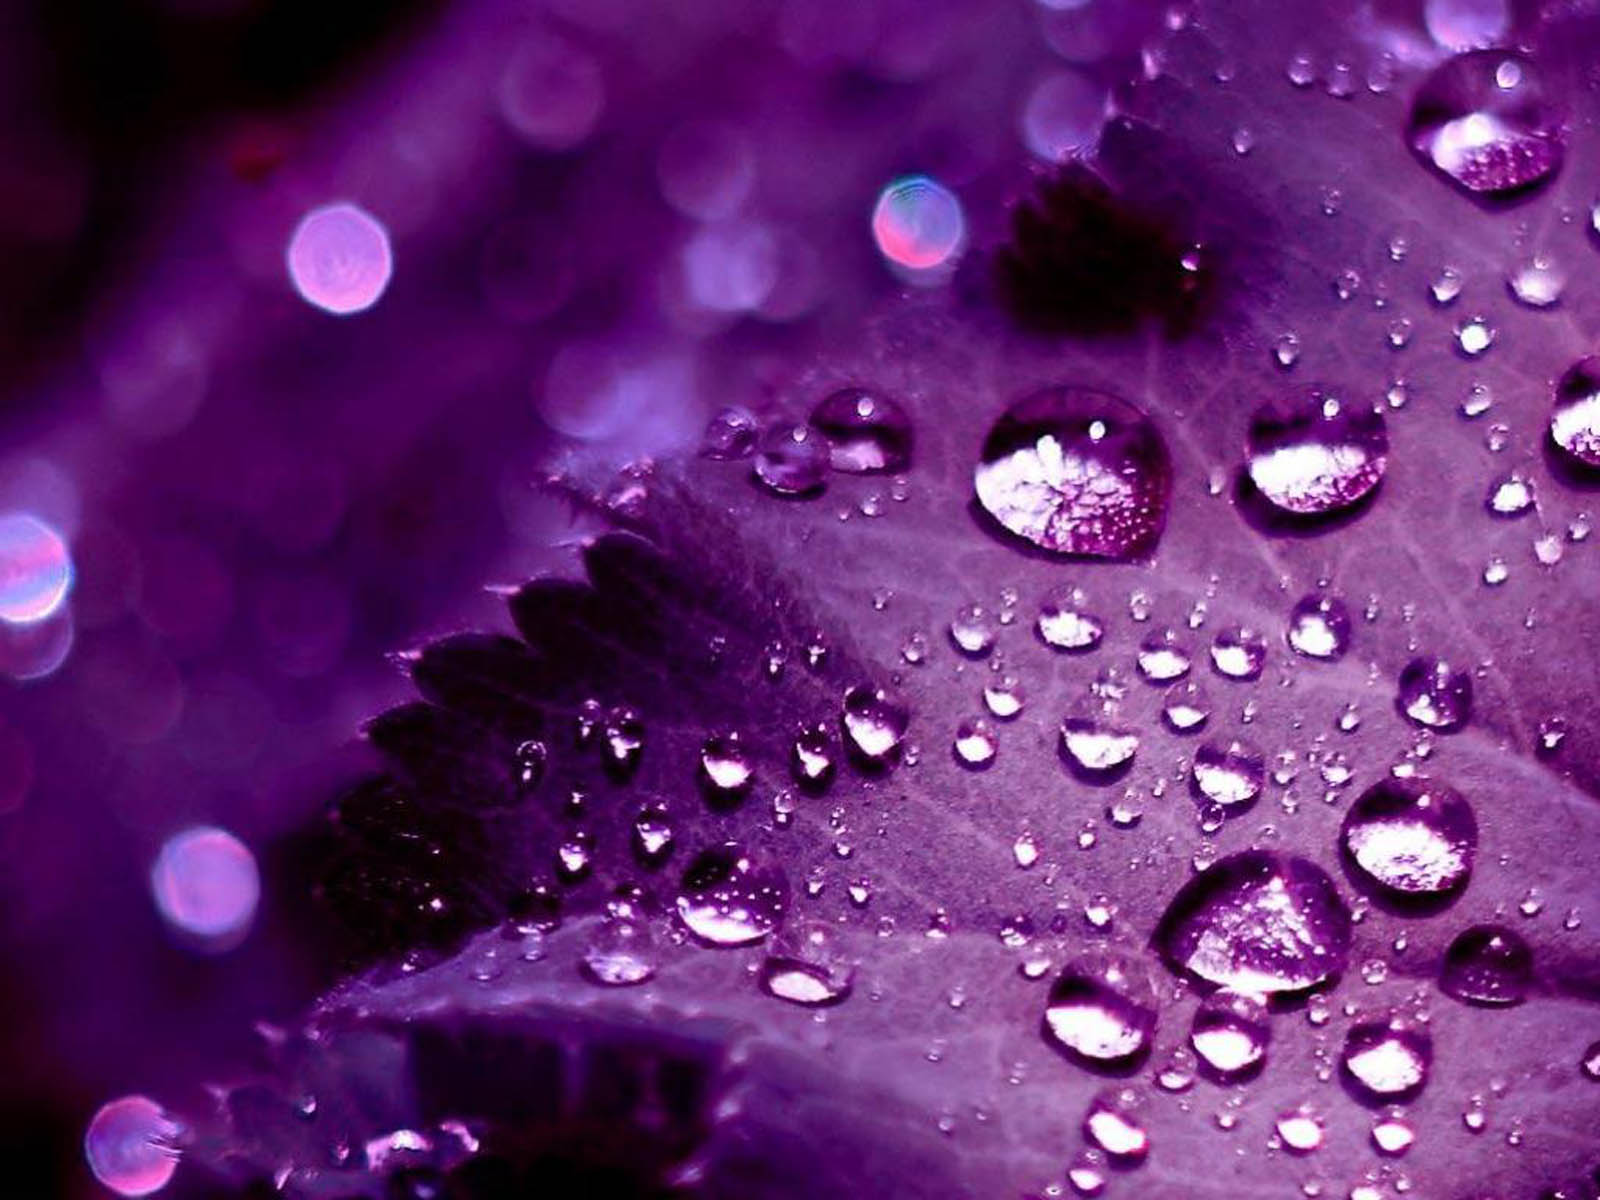 XS Wallpapers HD 3D Purple Wallpapers 1600x1200